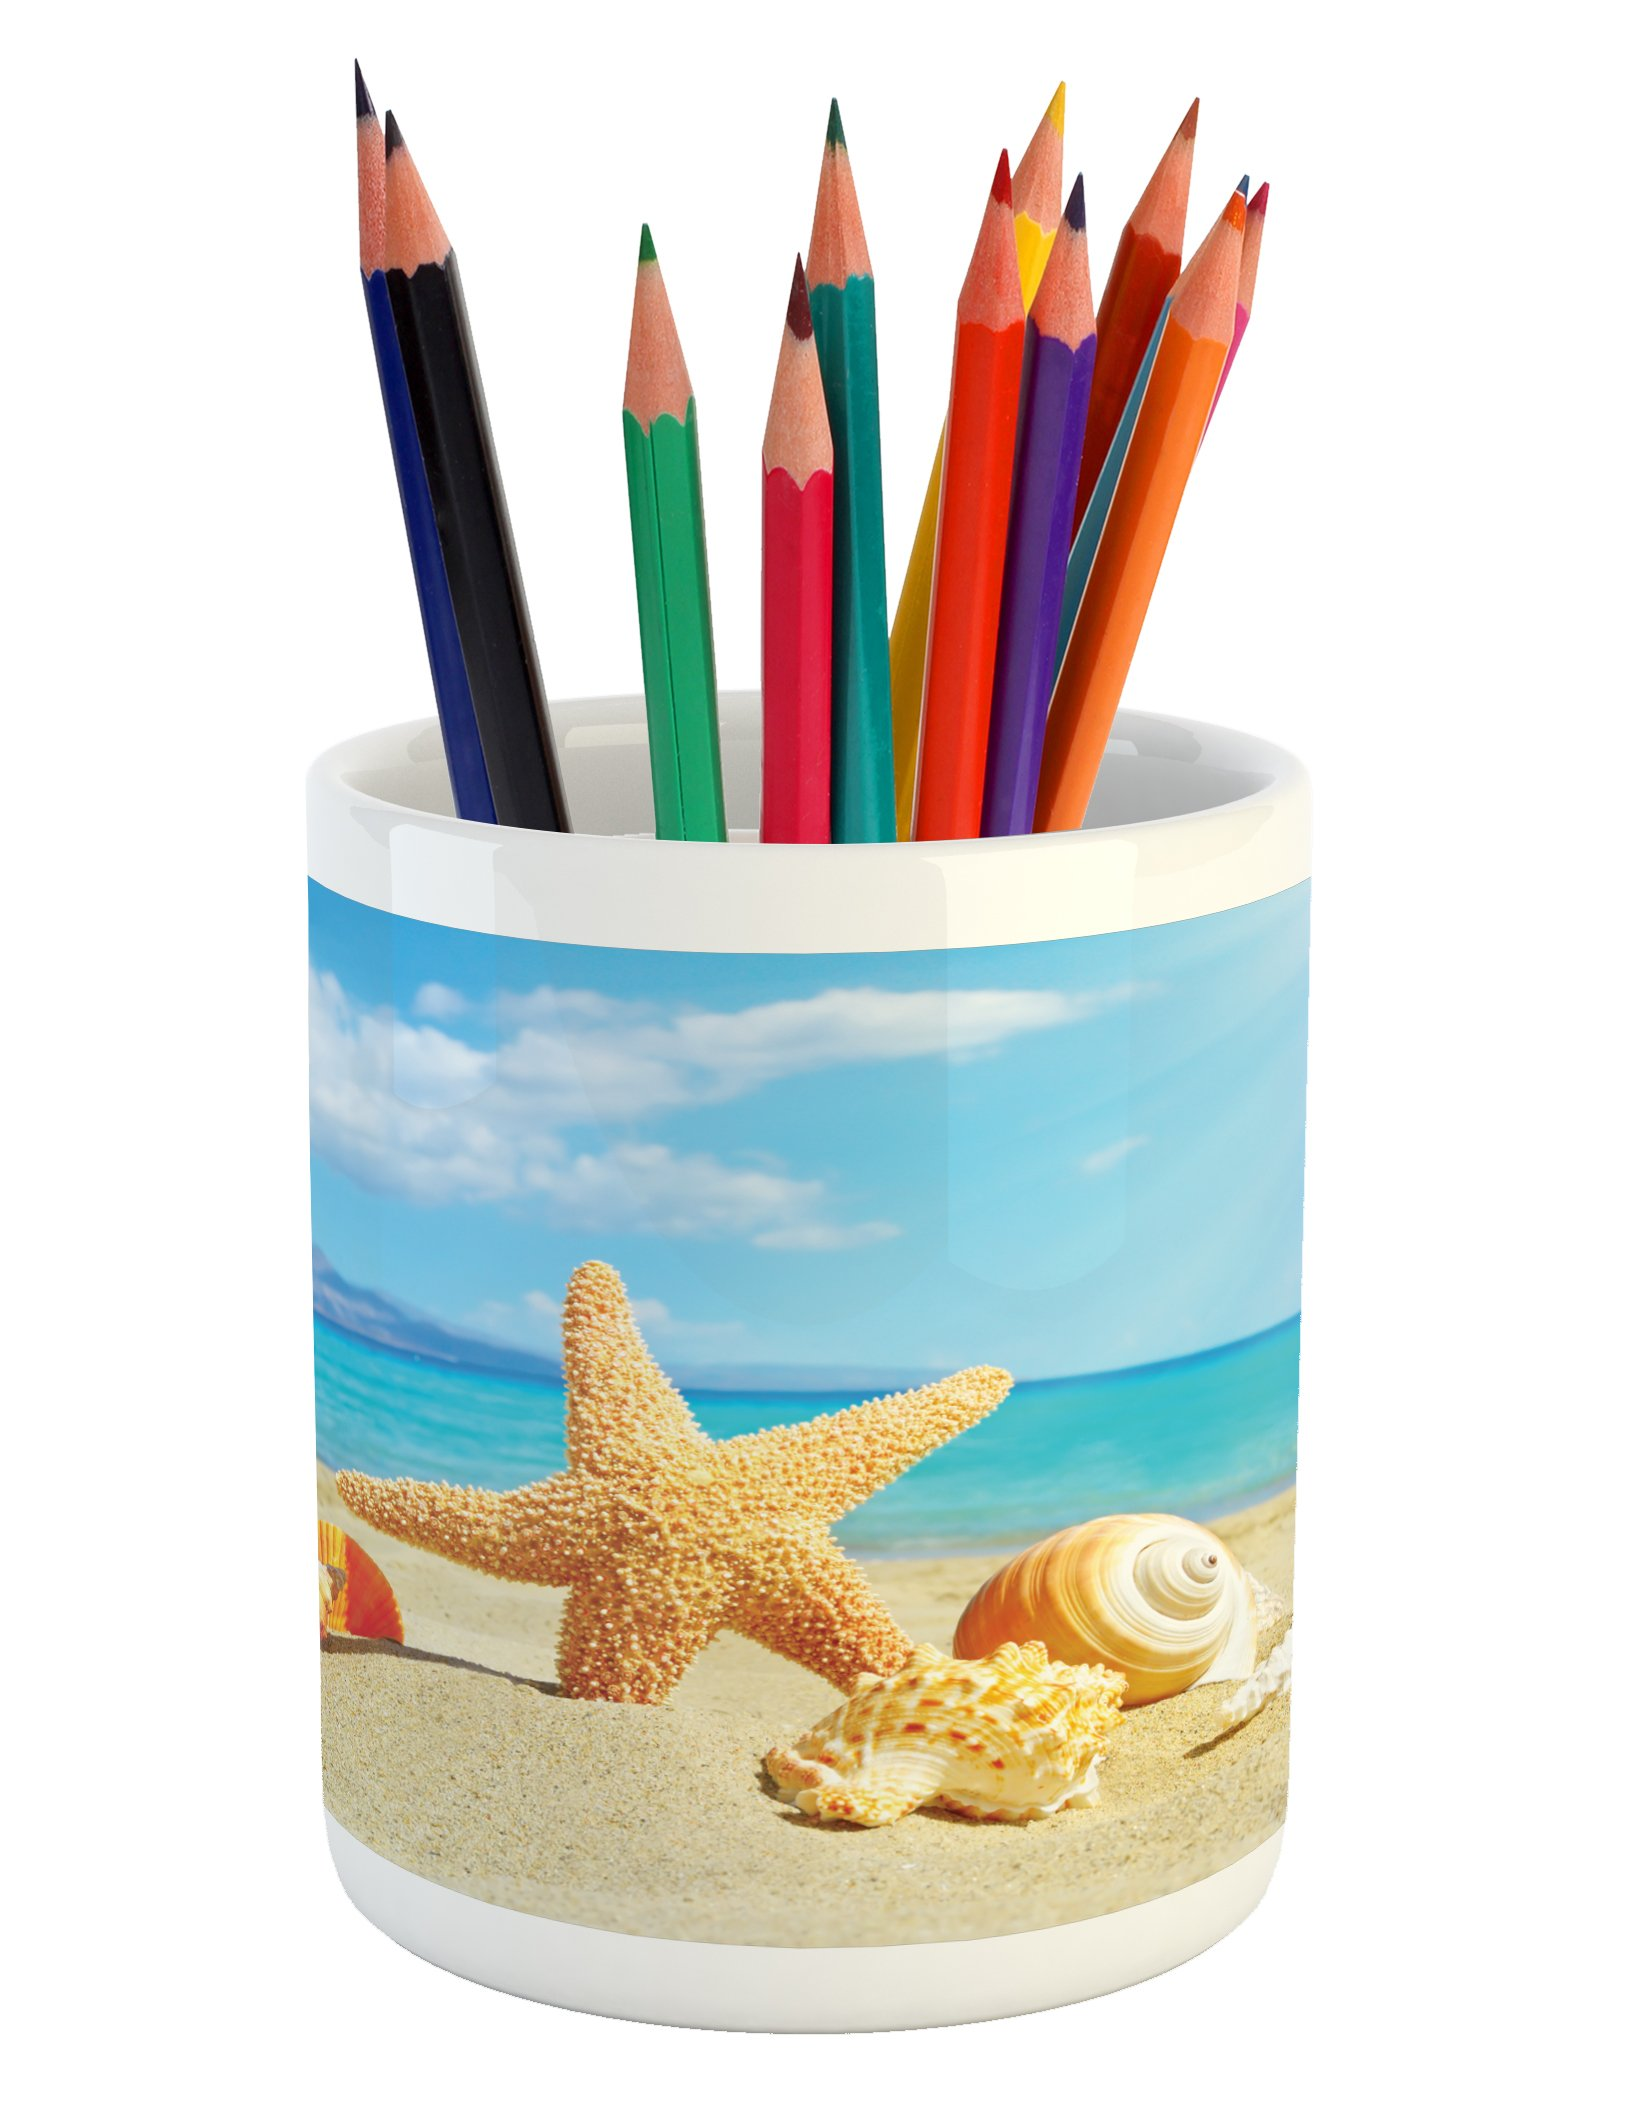 Ambesonne Seashells Pencil Pen Holder, Summer Beach Theme and Sand with Rays in The Sky Clouds Seaside Marine, Printed Ceramic Pencil Pen Holder for Desk Office Accessory, Aqua Ivory Mustard